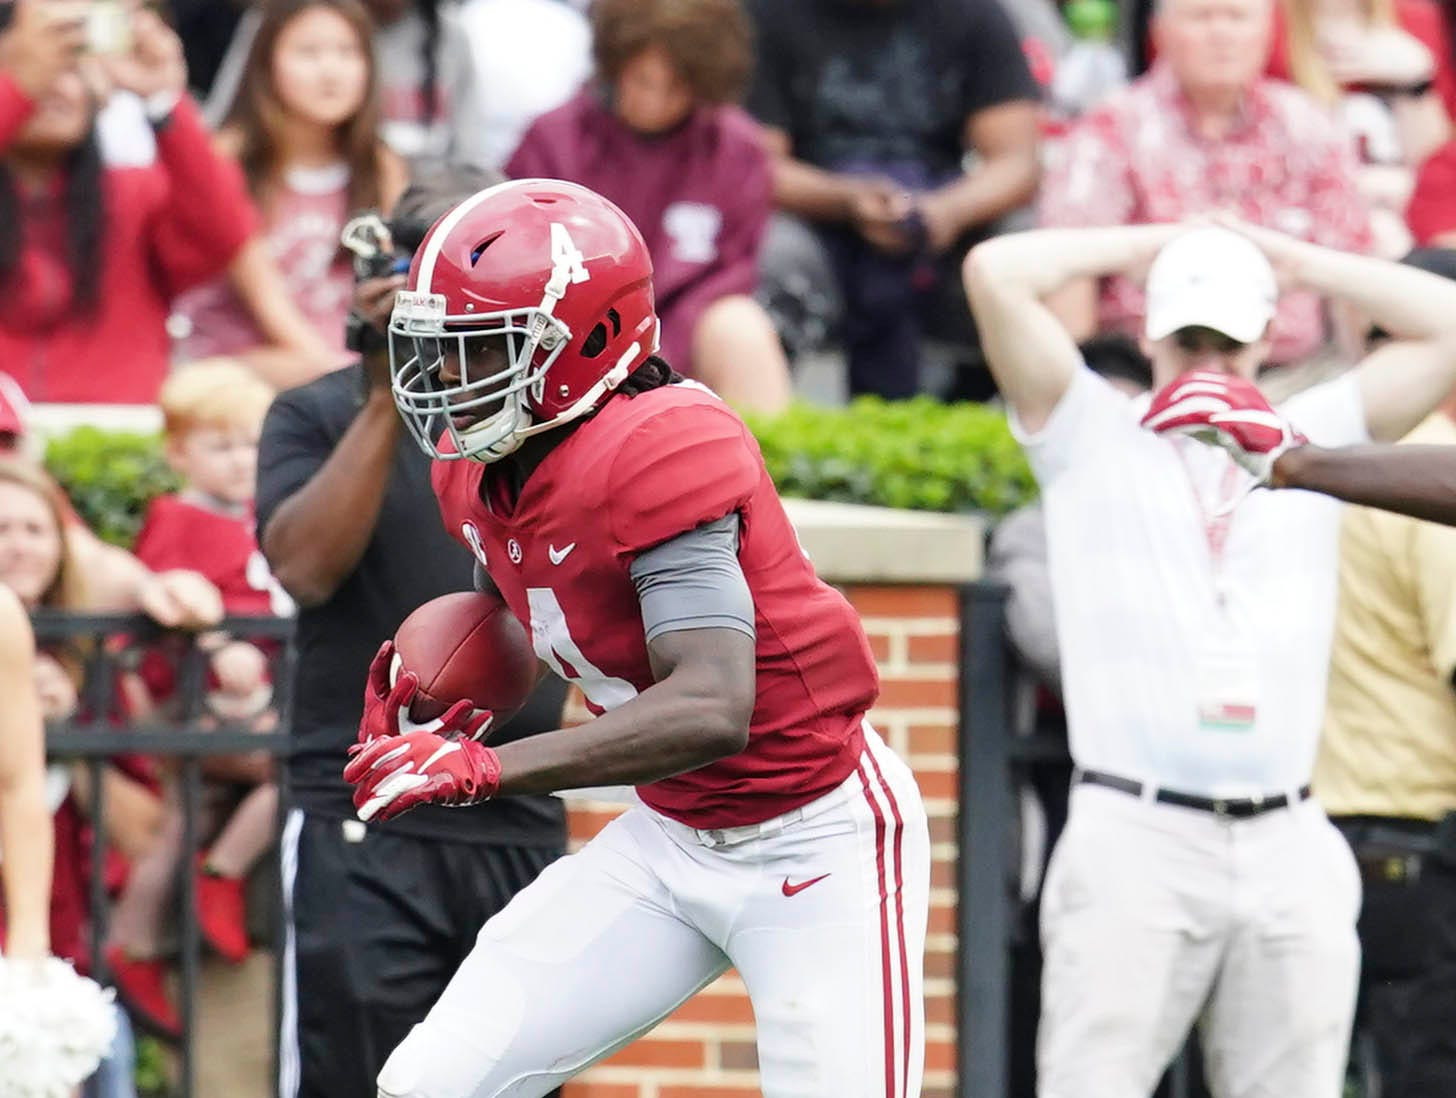 Apr 13, 2019; Tuscaloosa, AL, USA; Alabama Crimson Tide wide receiver Jerry Jeudy (4) carries the ball during the spring game at Bryant-Denny Stadium. Mandatory Credit: Marvin Gentry-USA TODAY Sports